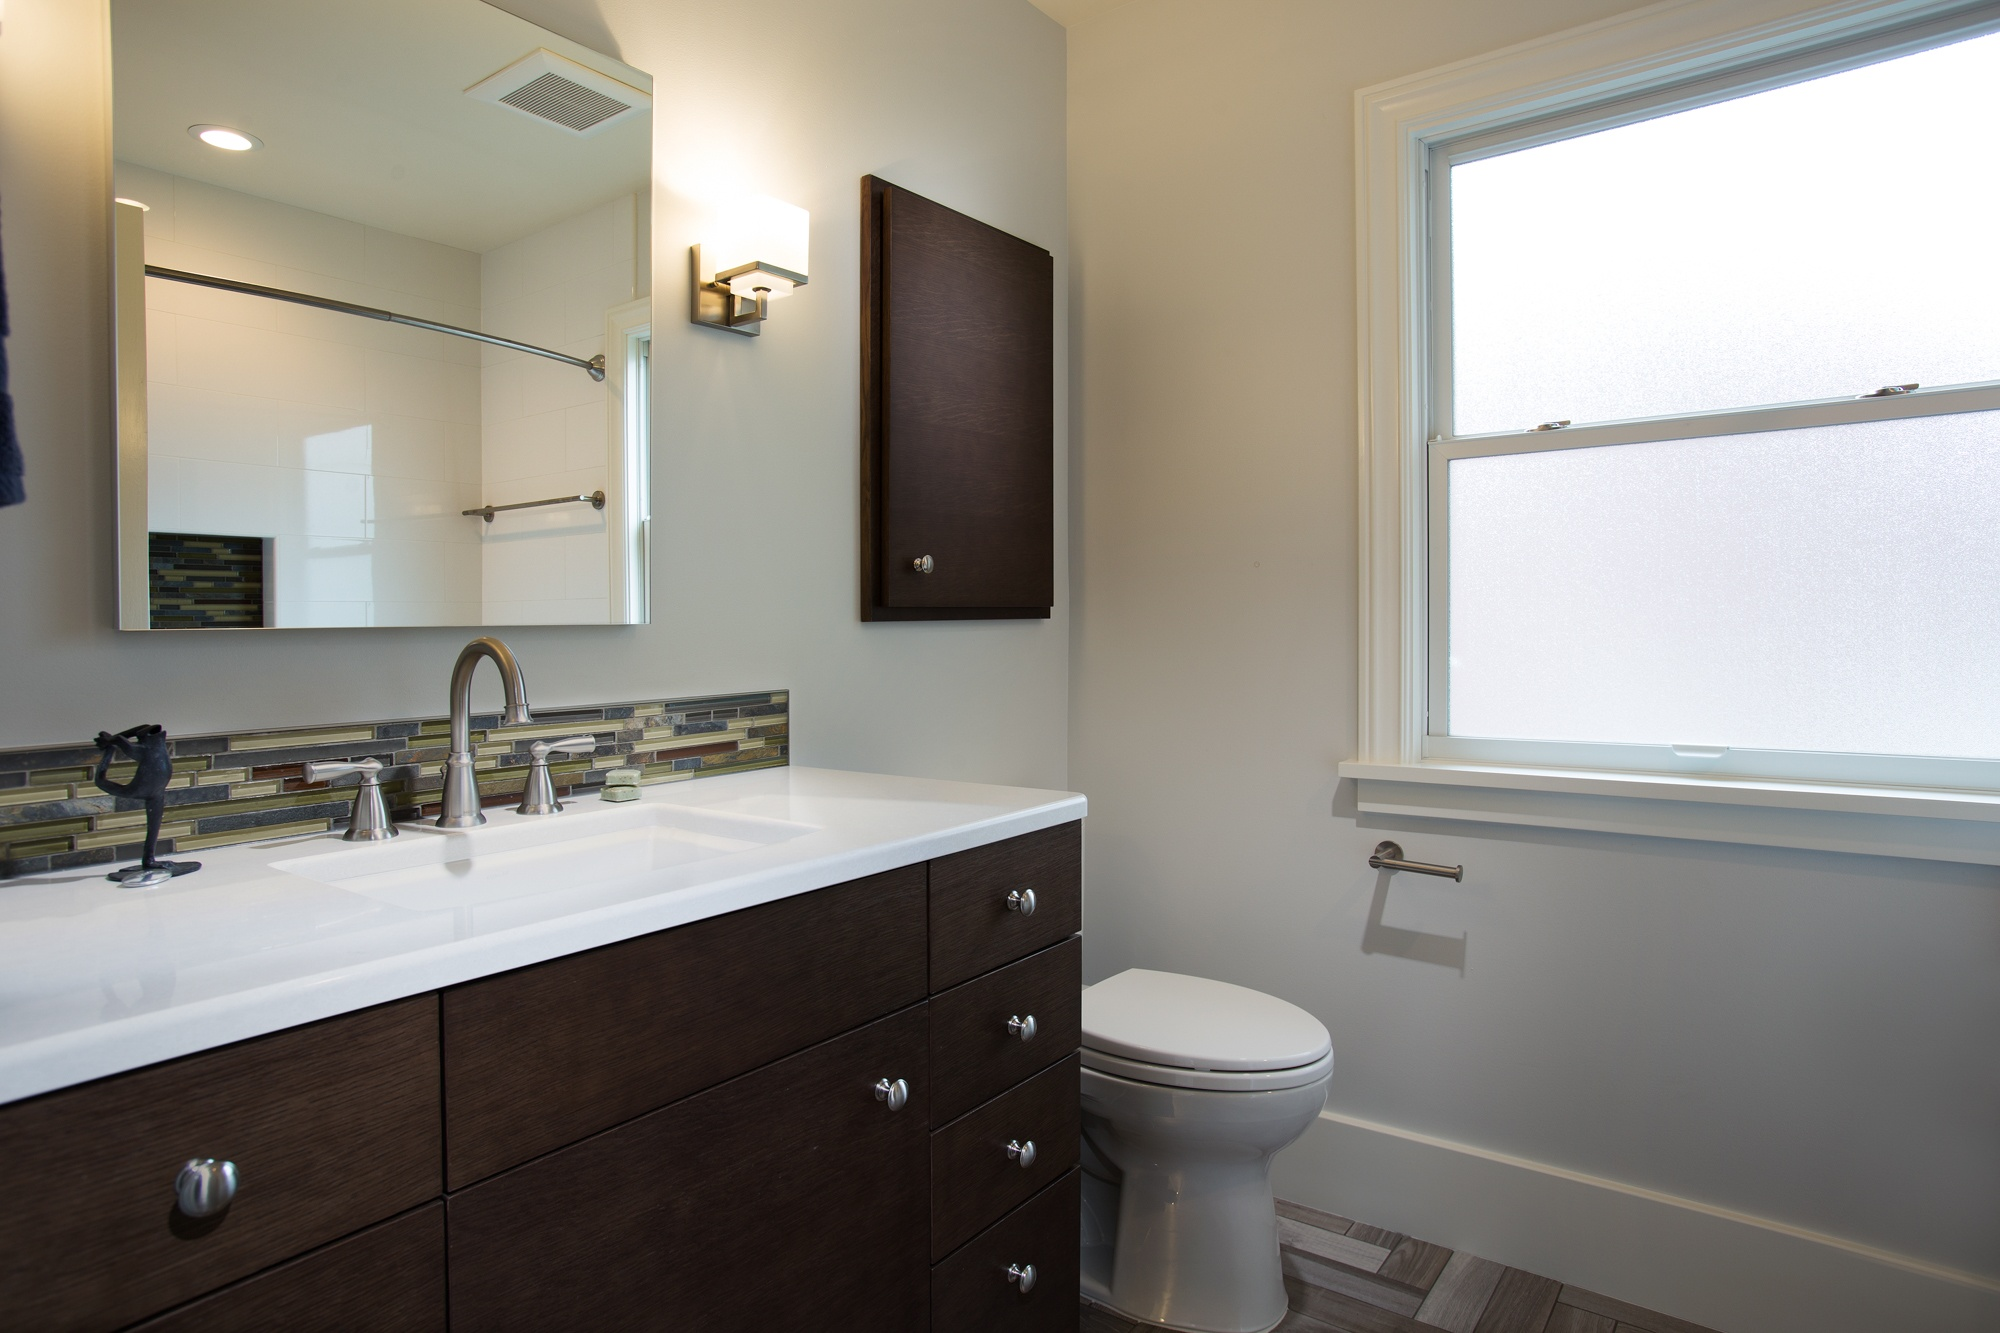 Are Permits Required For A Bathroom Remodel In Seattle Diy Home Improvement Pinterest Electrical Wiring